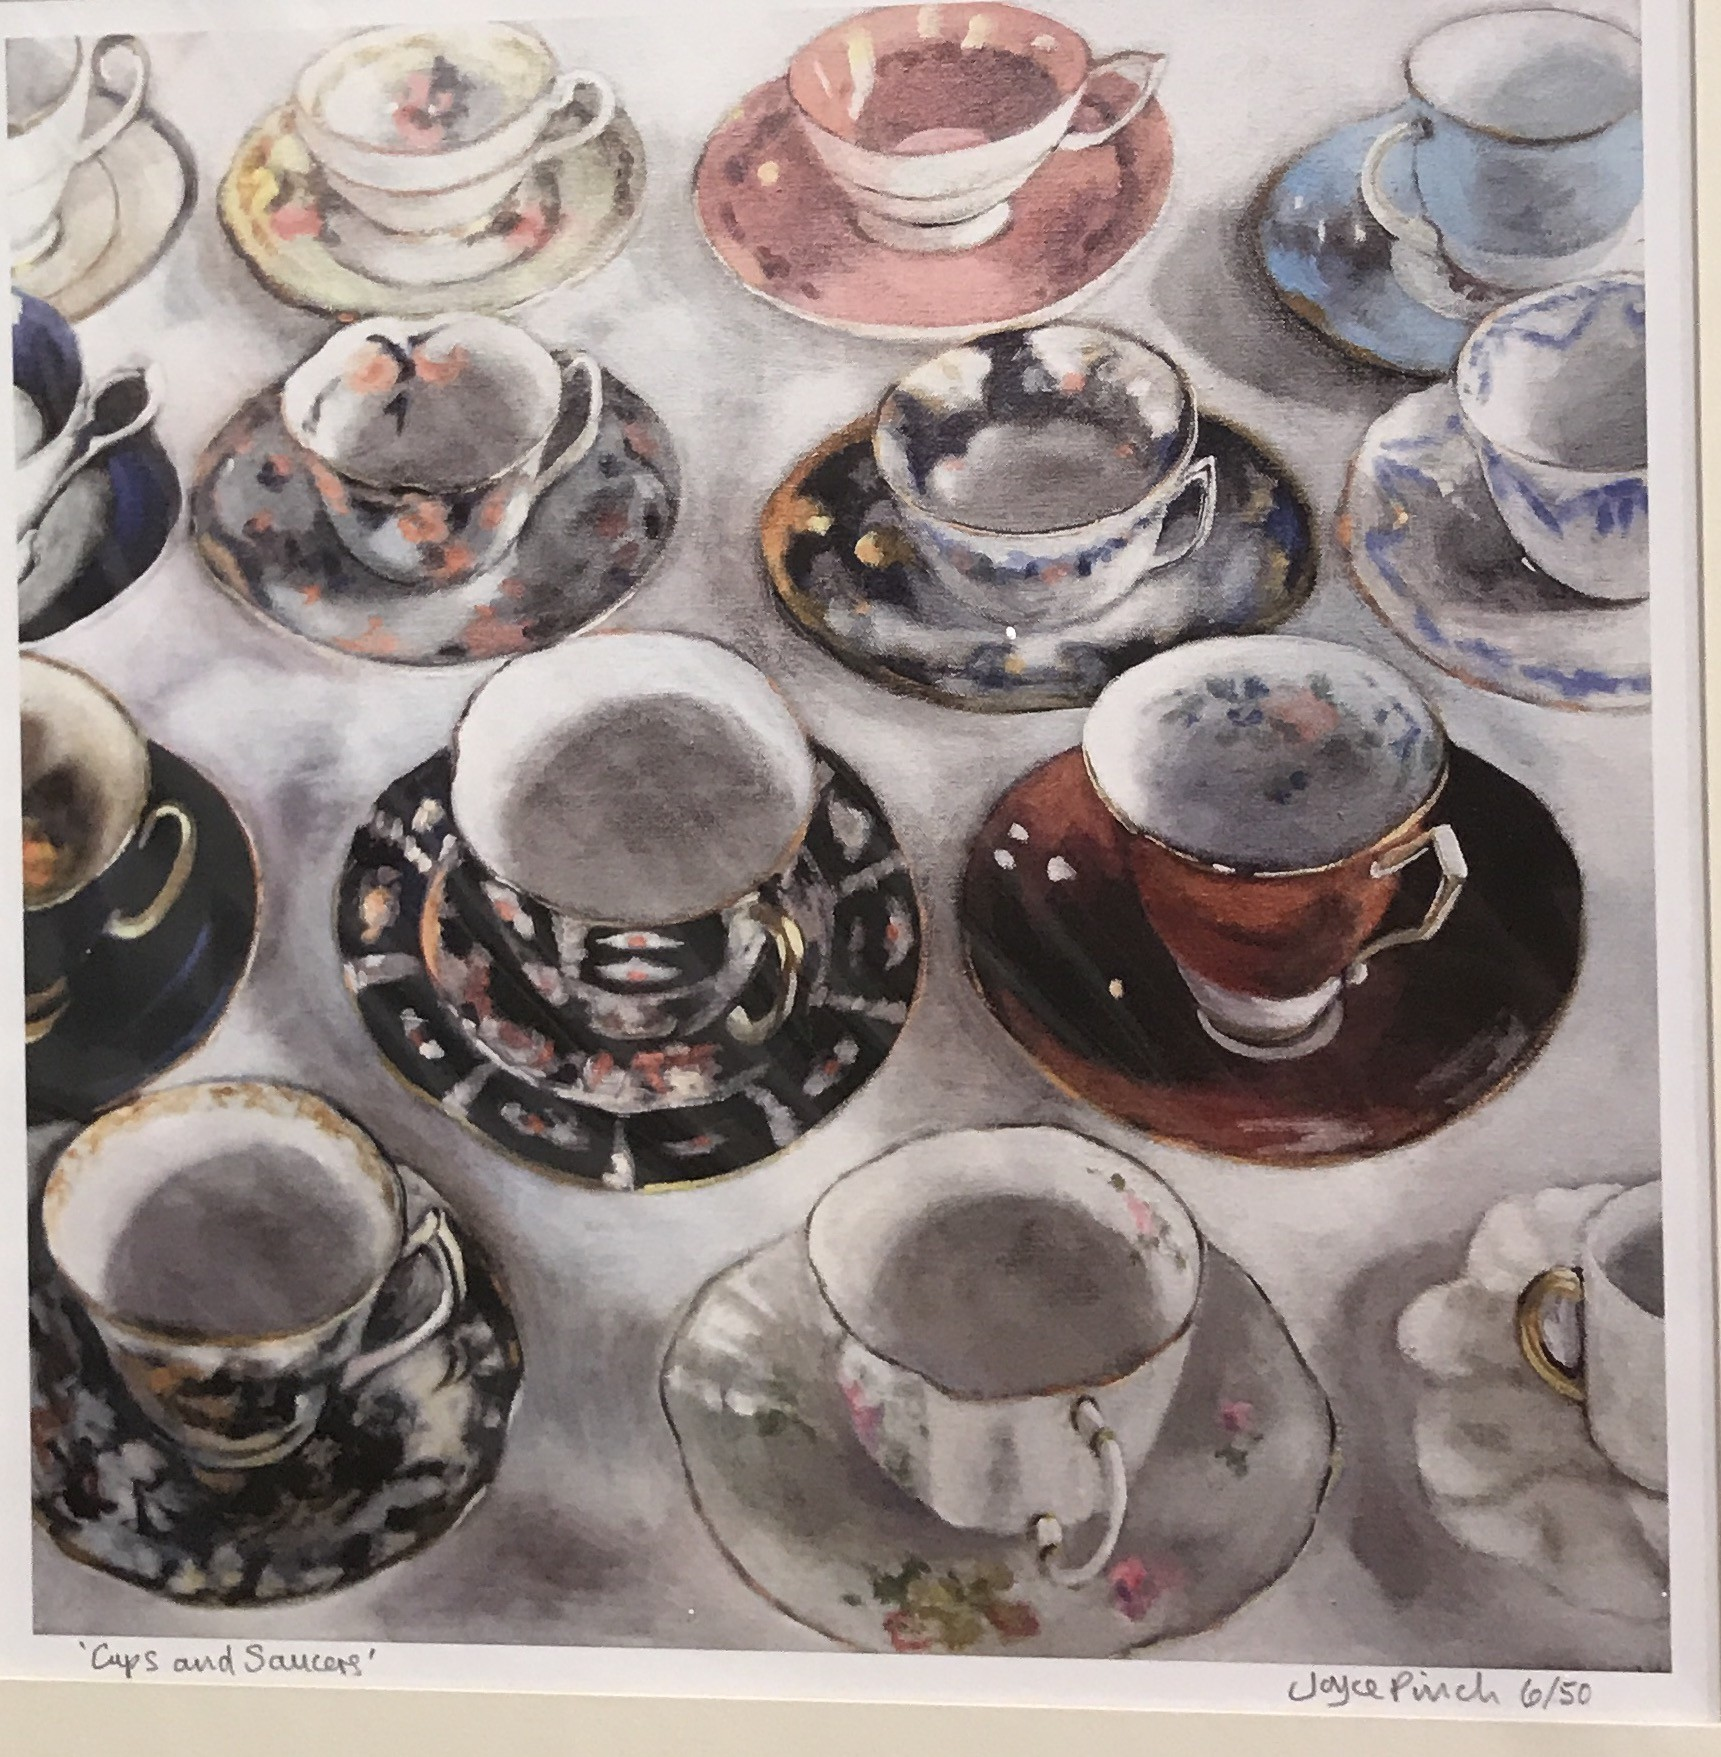 """<span class=""""link fancybox-details-link""""><a href=""""/artists/34-joyce-pinch/works/398-joyce-pinch-cups-and-saucers/"""">View Detail Page</a></span><div class=""""artist""""><strong>Joyce Pinch</strong></div> <div class=""""title""""><em>Cups and saucers</em></div> <div class=""""medium"""">Limited Edition Print (framed)</div> <div class=""""dimensions"""">26 x 26 cm</div> <div class=""""edition_details"""">Edition of 50</div><div class=""""price"""">£120.00</div>"""